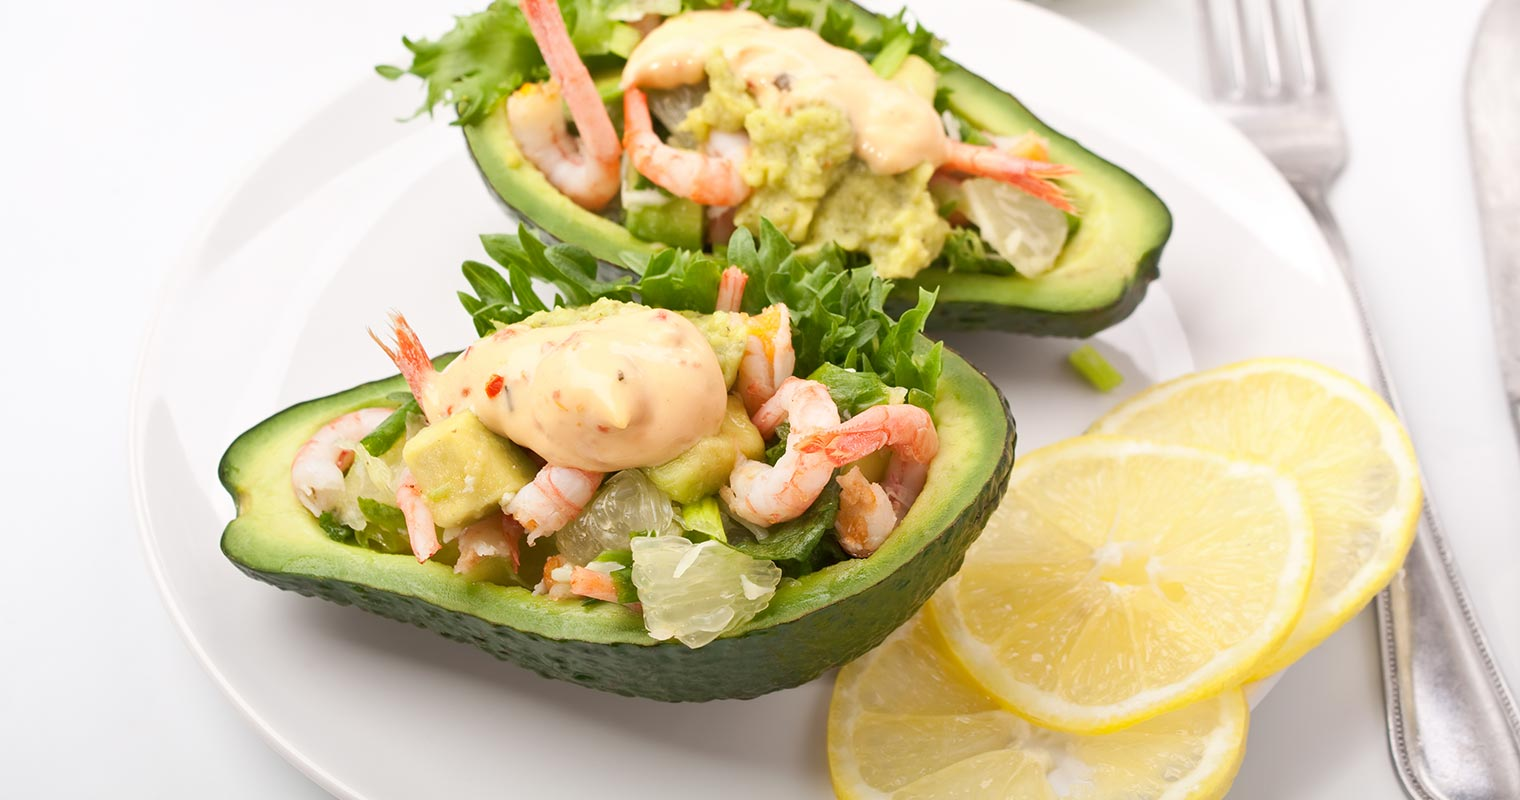 avocados and shrimps are good sources of dietary vitamin E for antioxidant effect and smoother skin